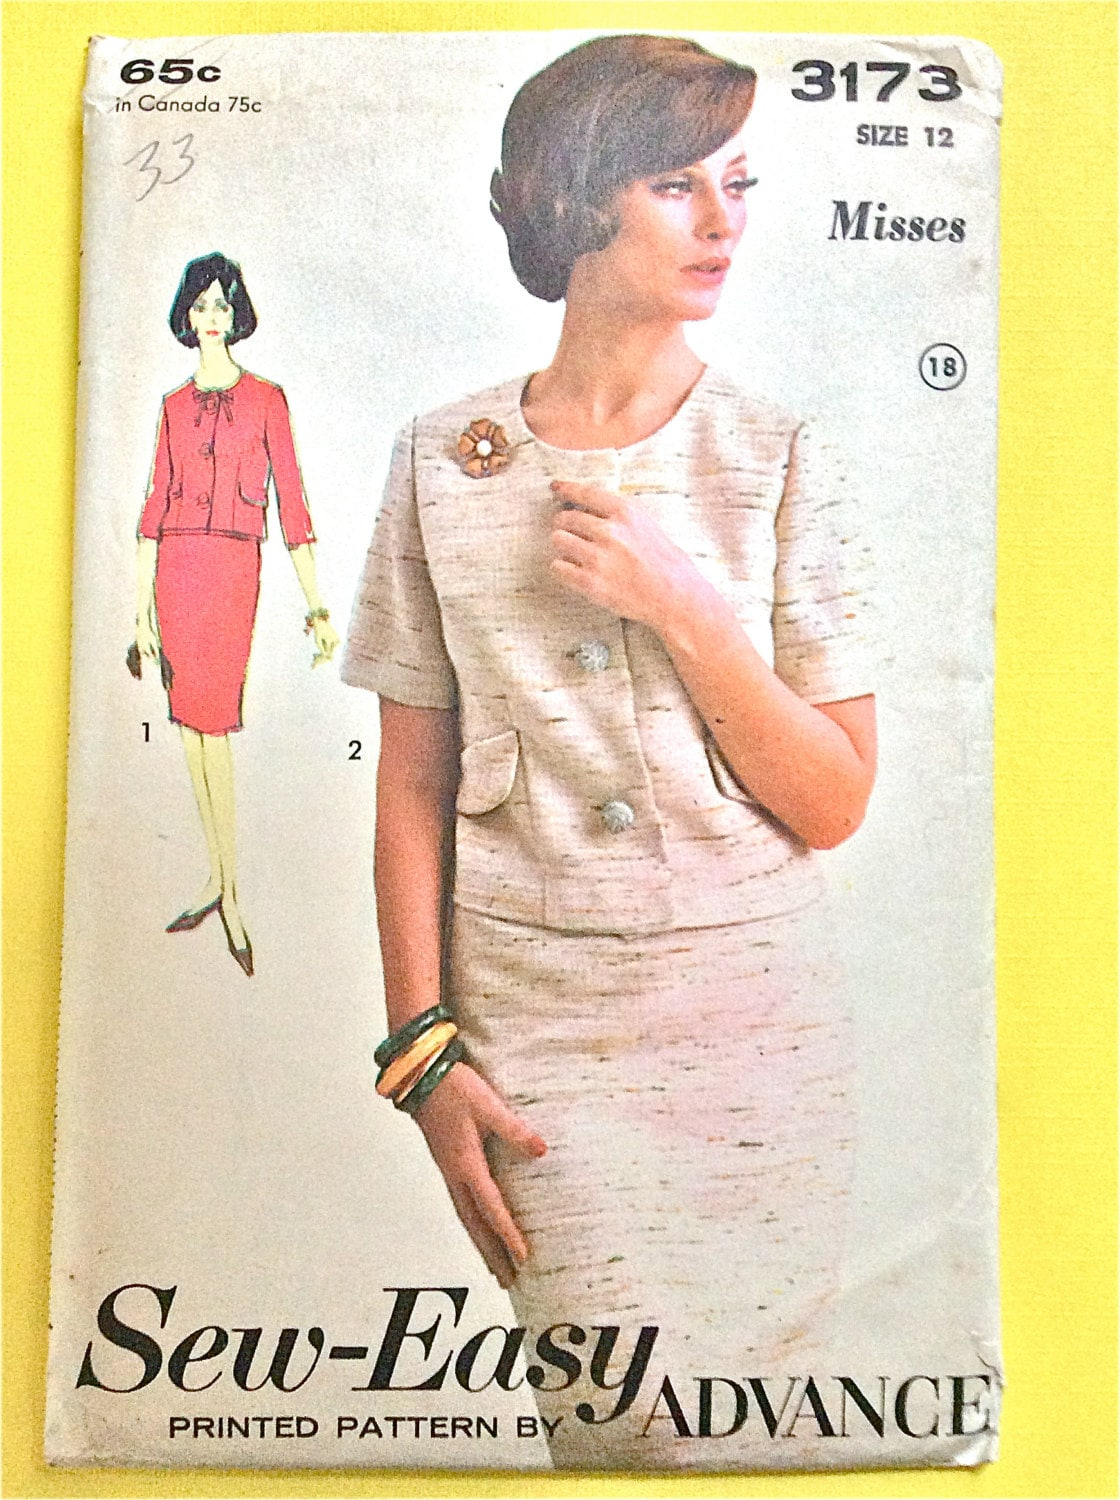 Misses suit sew easy advance 3173 box jacket slim skirt vintage sold by fancywork jeuxipadfo Gallery